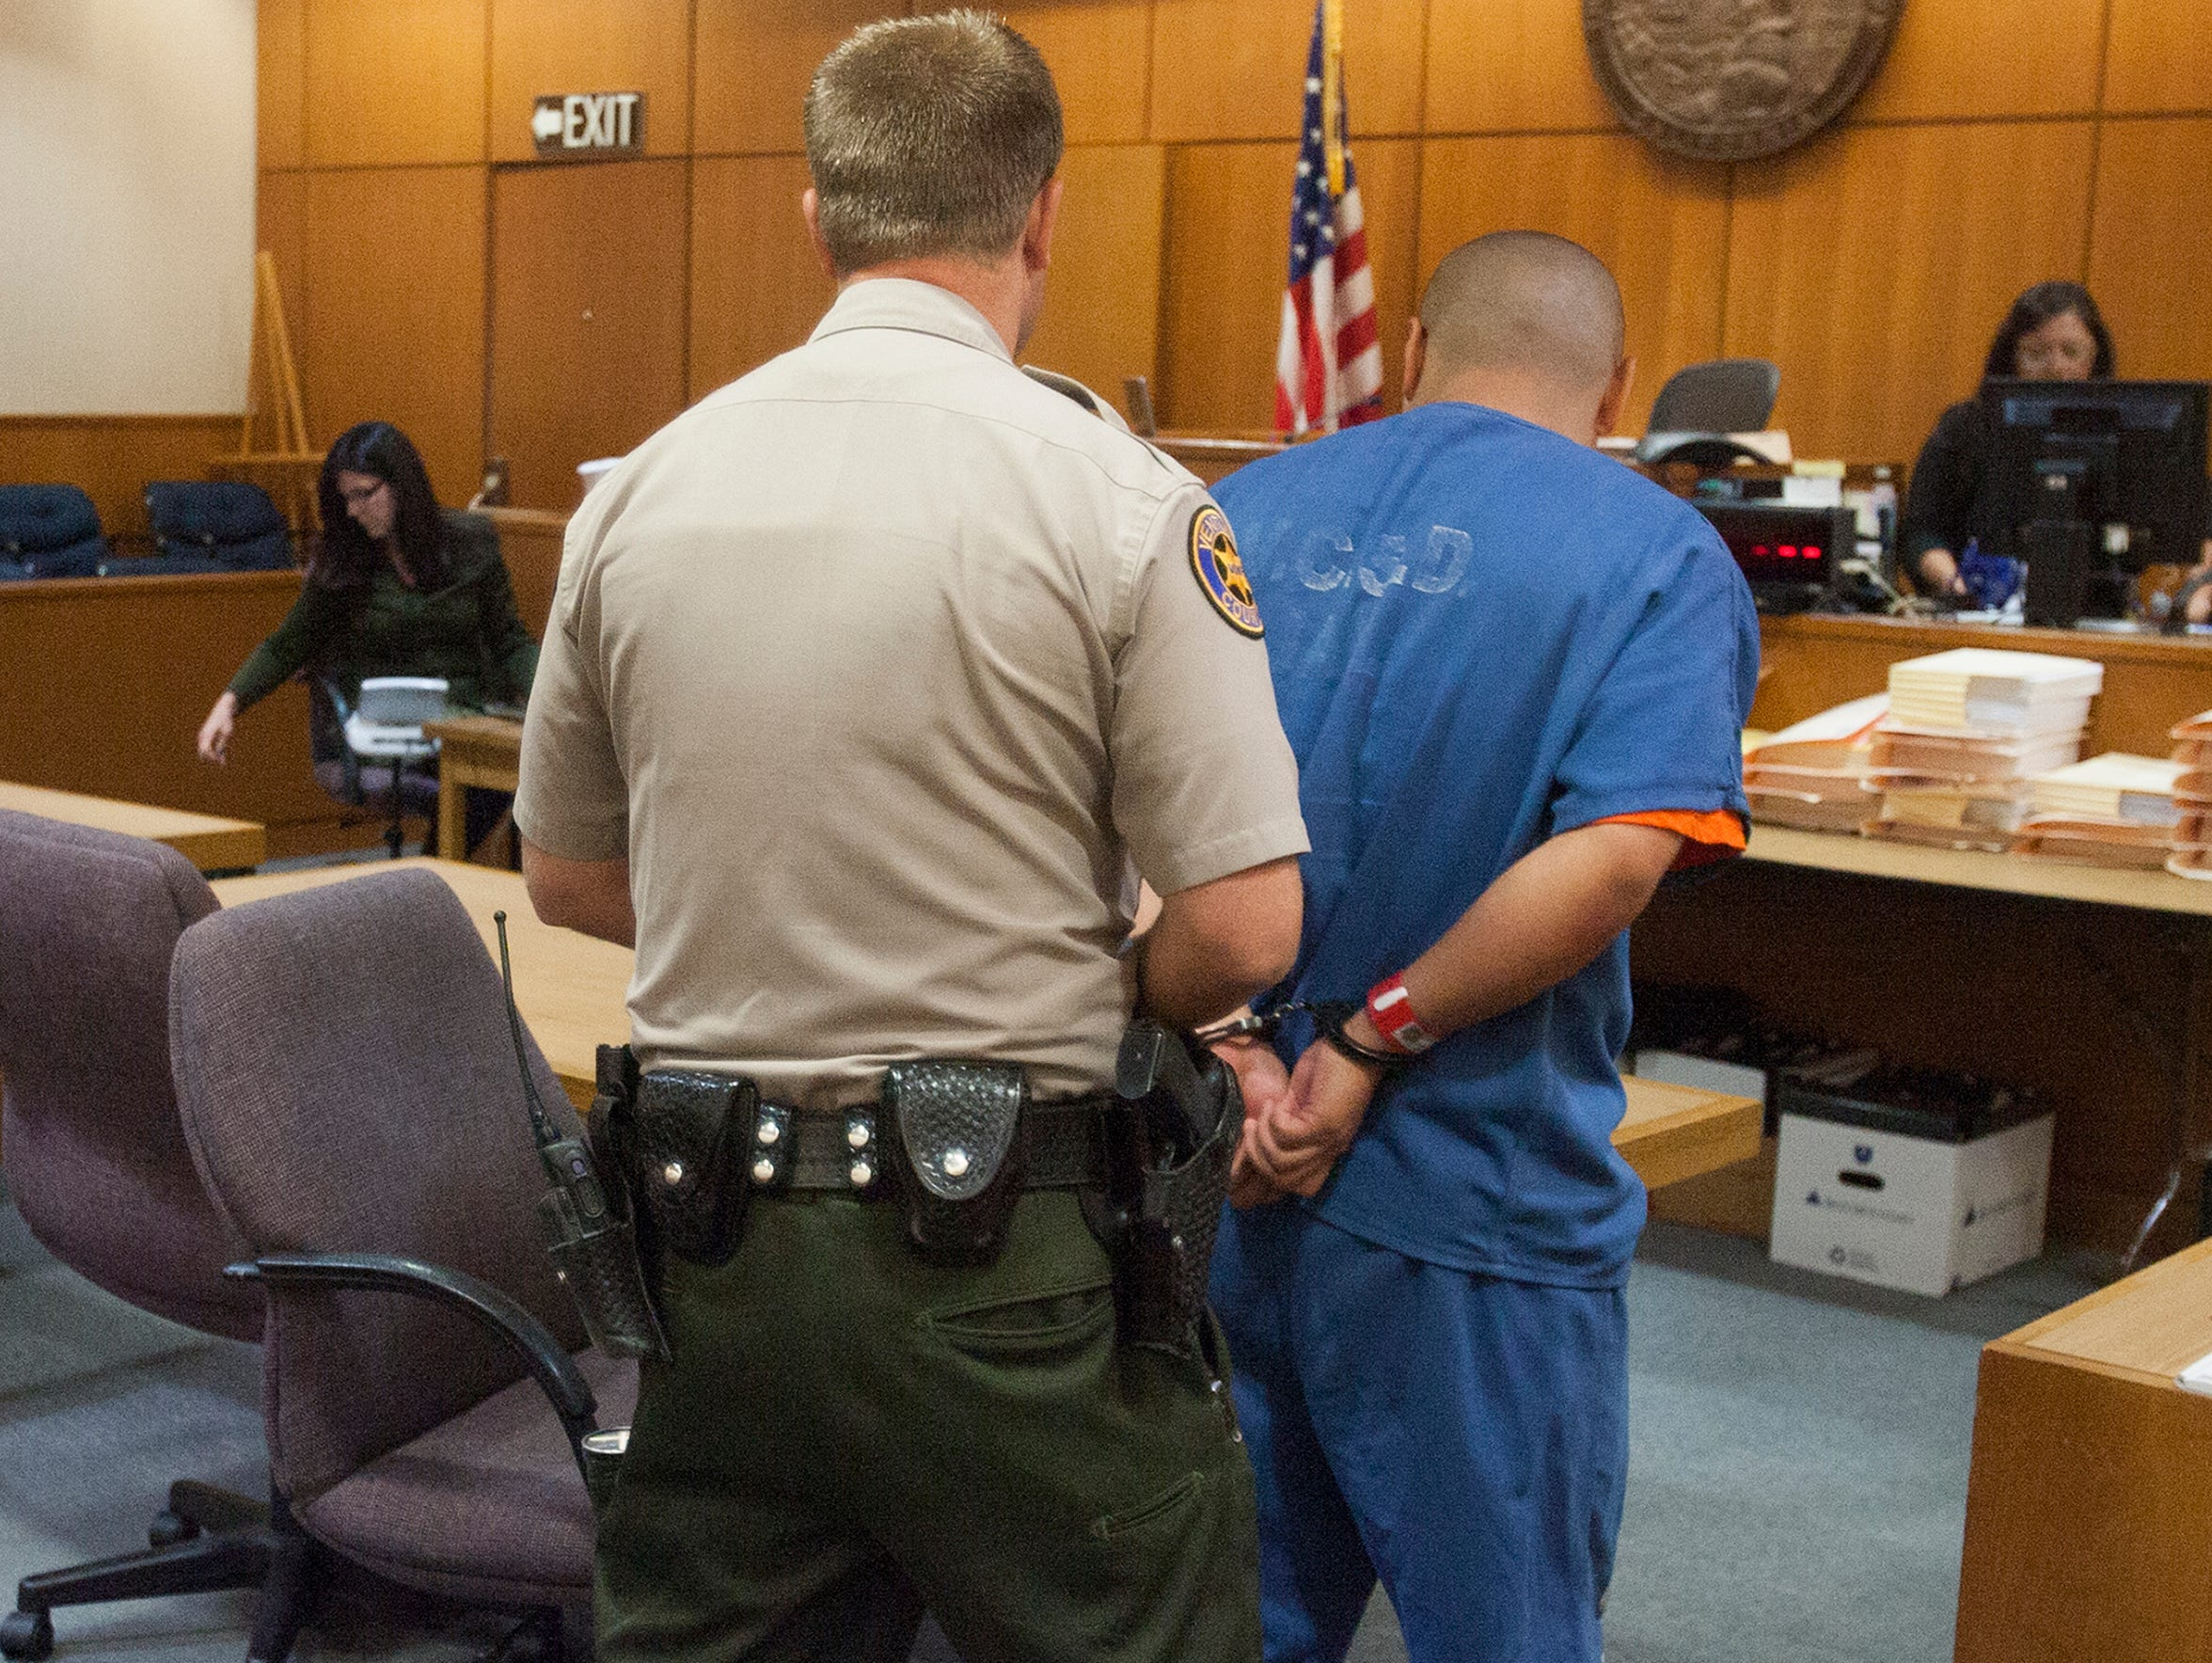 Joseph Salas, right, is handcuffed Aug. 21 to be transported